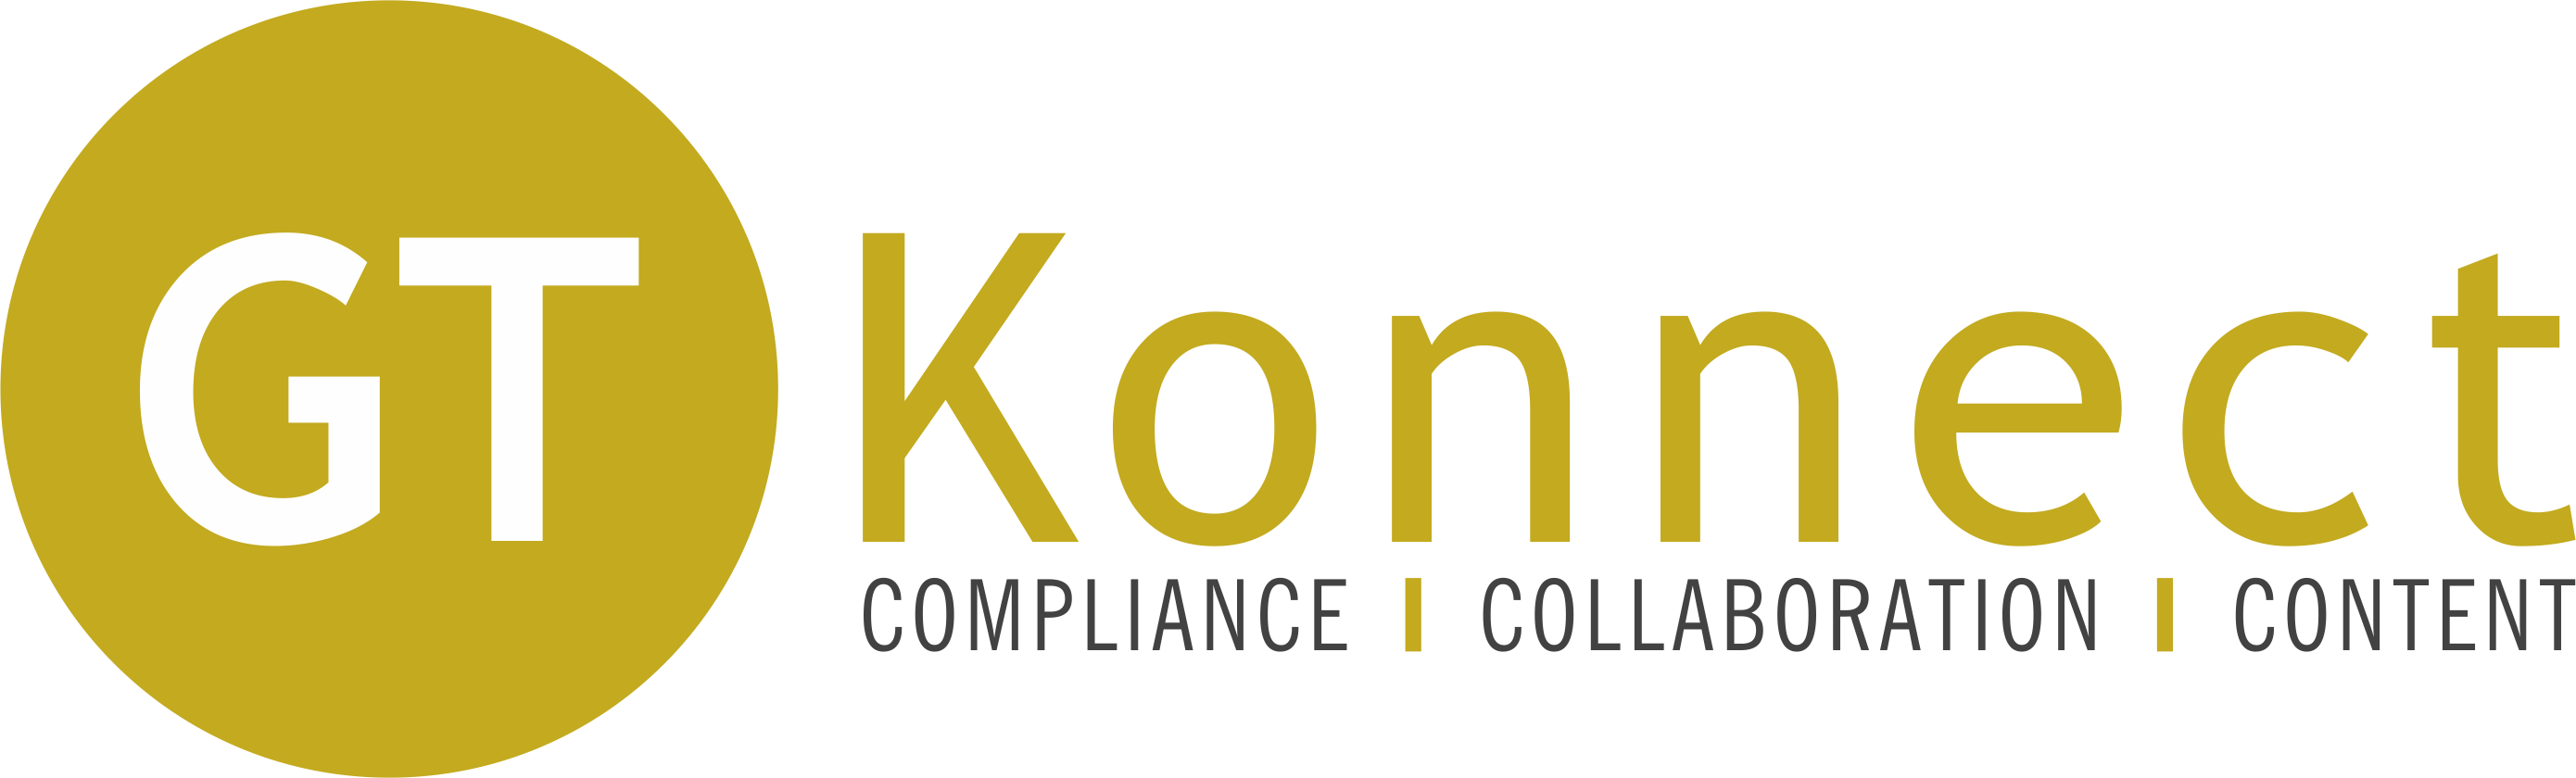 GTKonnect India Pvt Ltd Job Openings